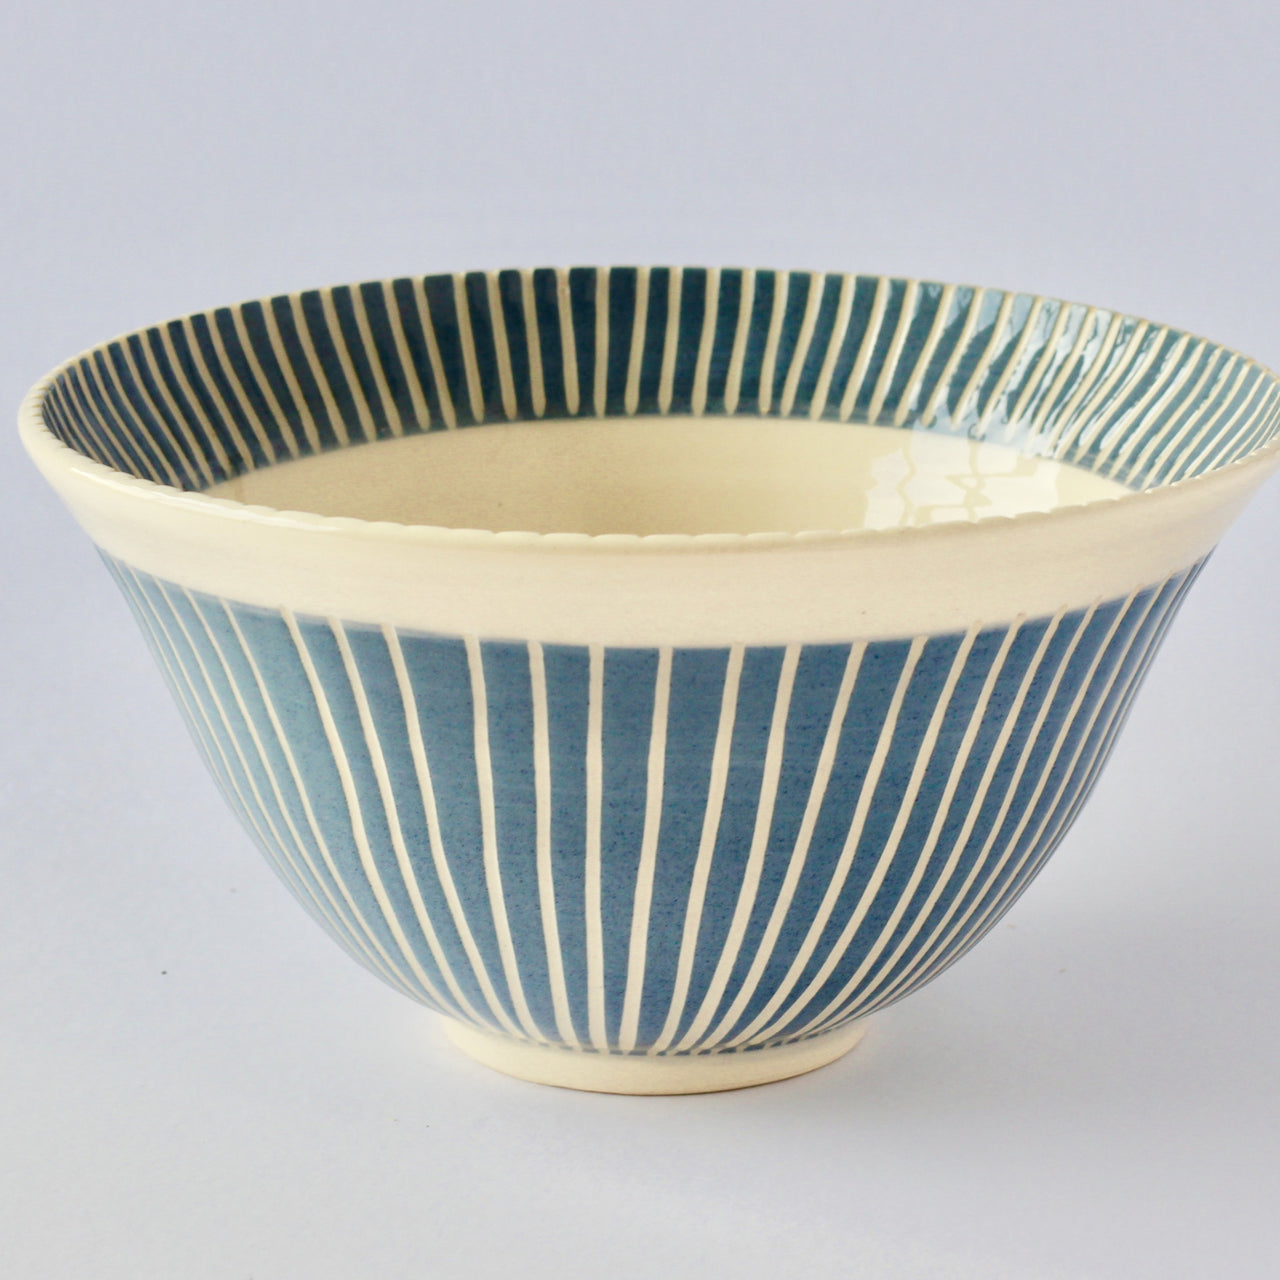 Rhesog Bowl - Light Blue - Large